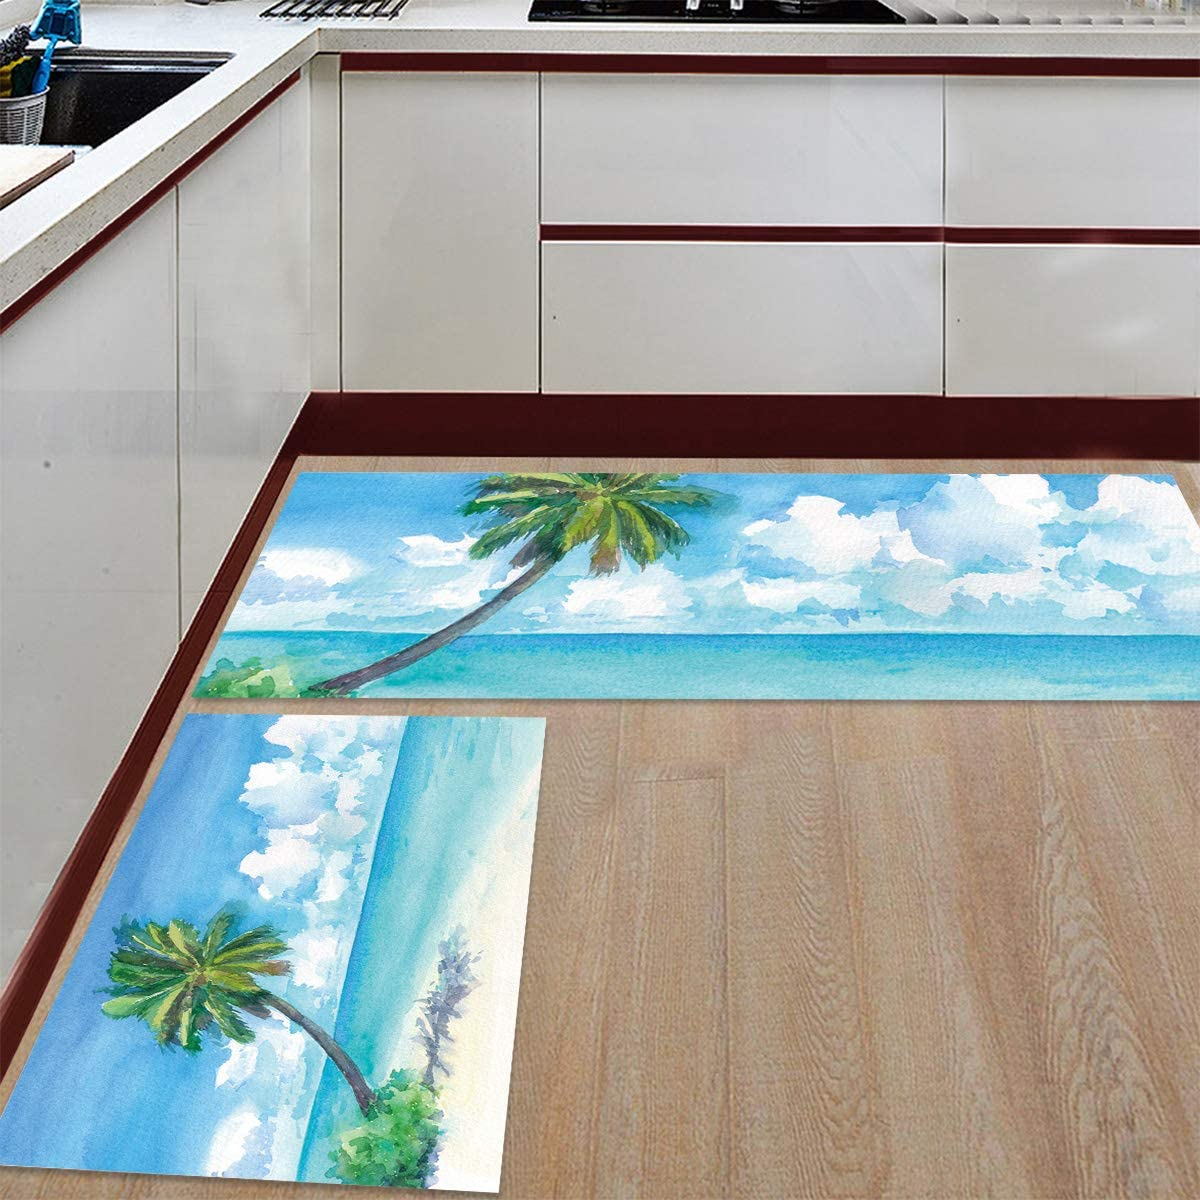 Advancey 2 Pieces Anti-Slip Kitchen Mats Tree T Max 45% OFF safety on Tropical Palm